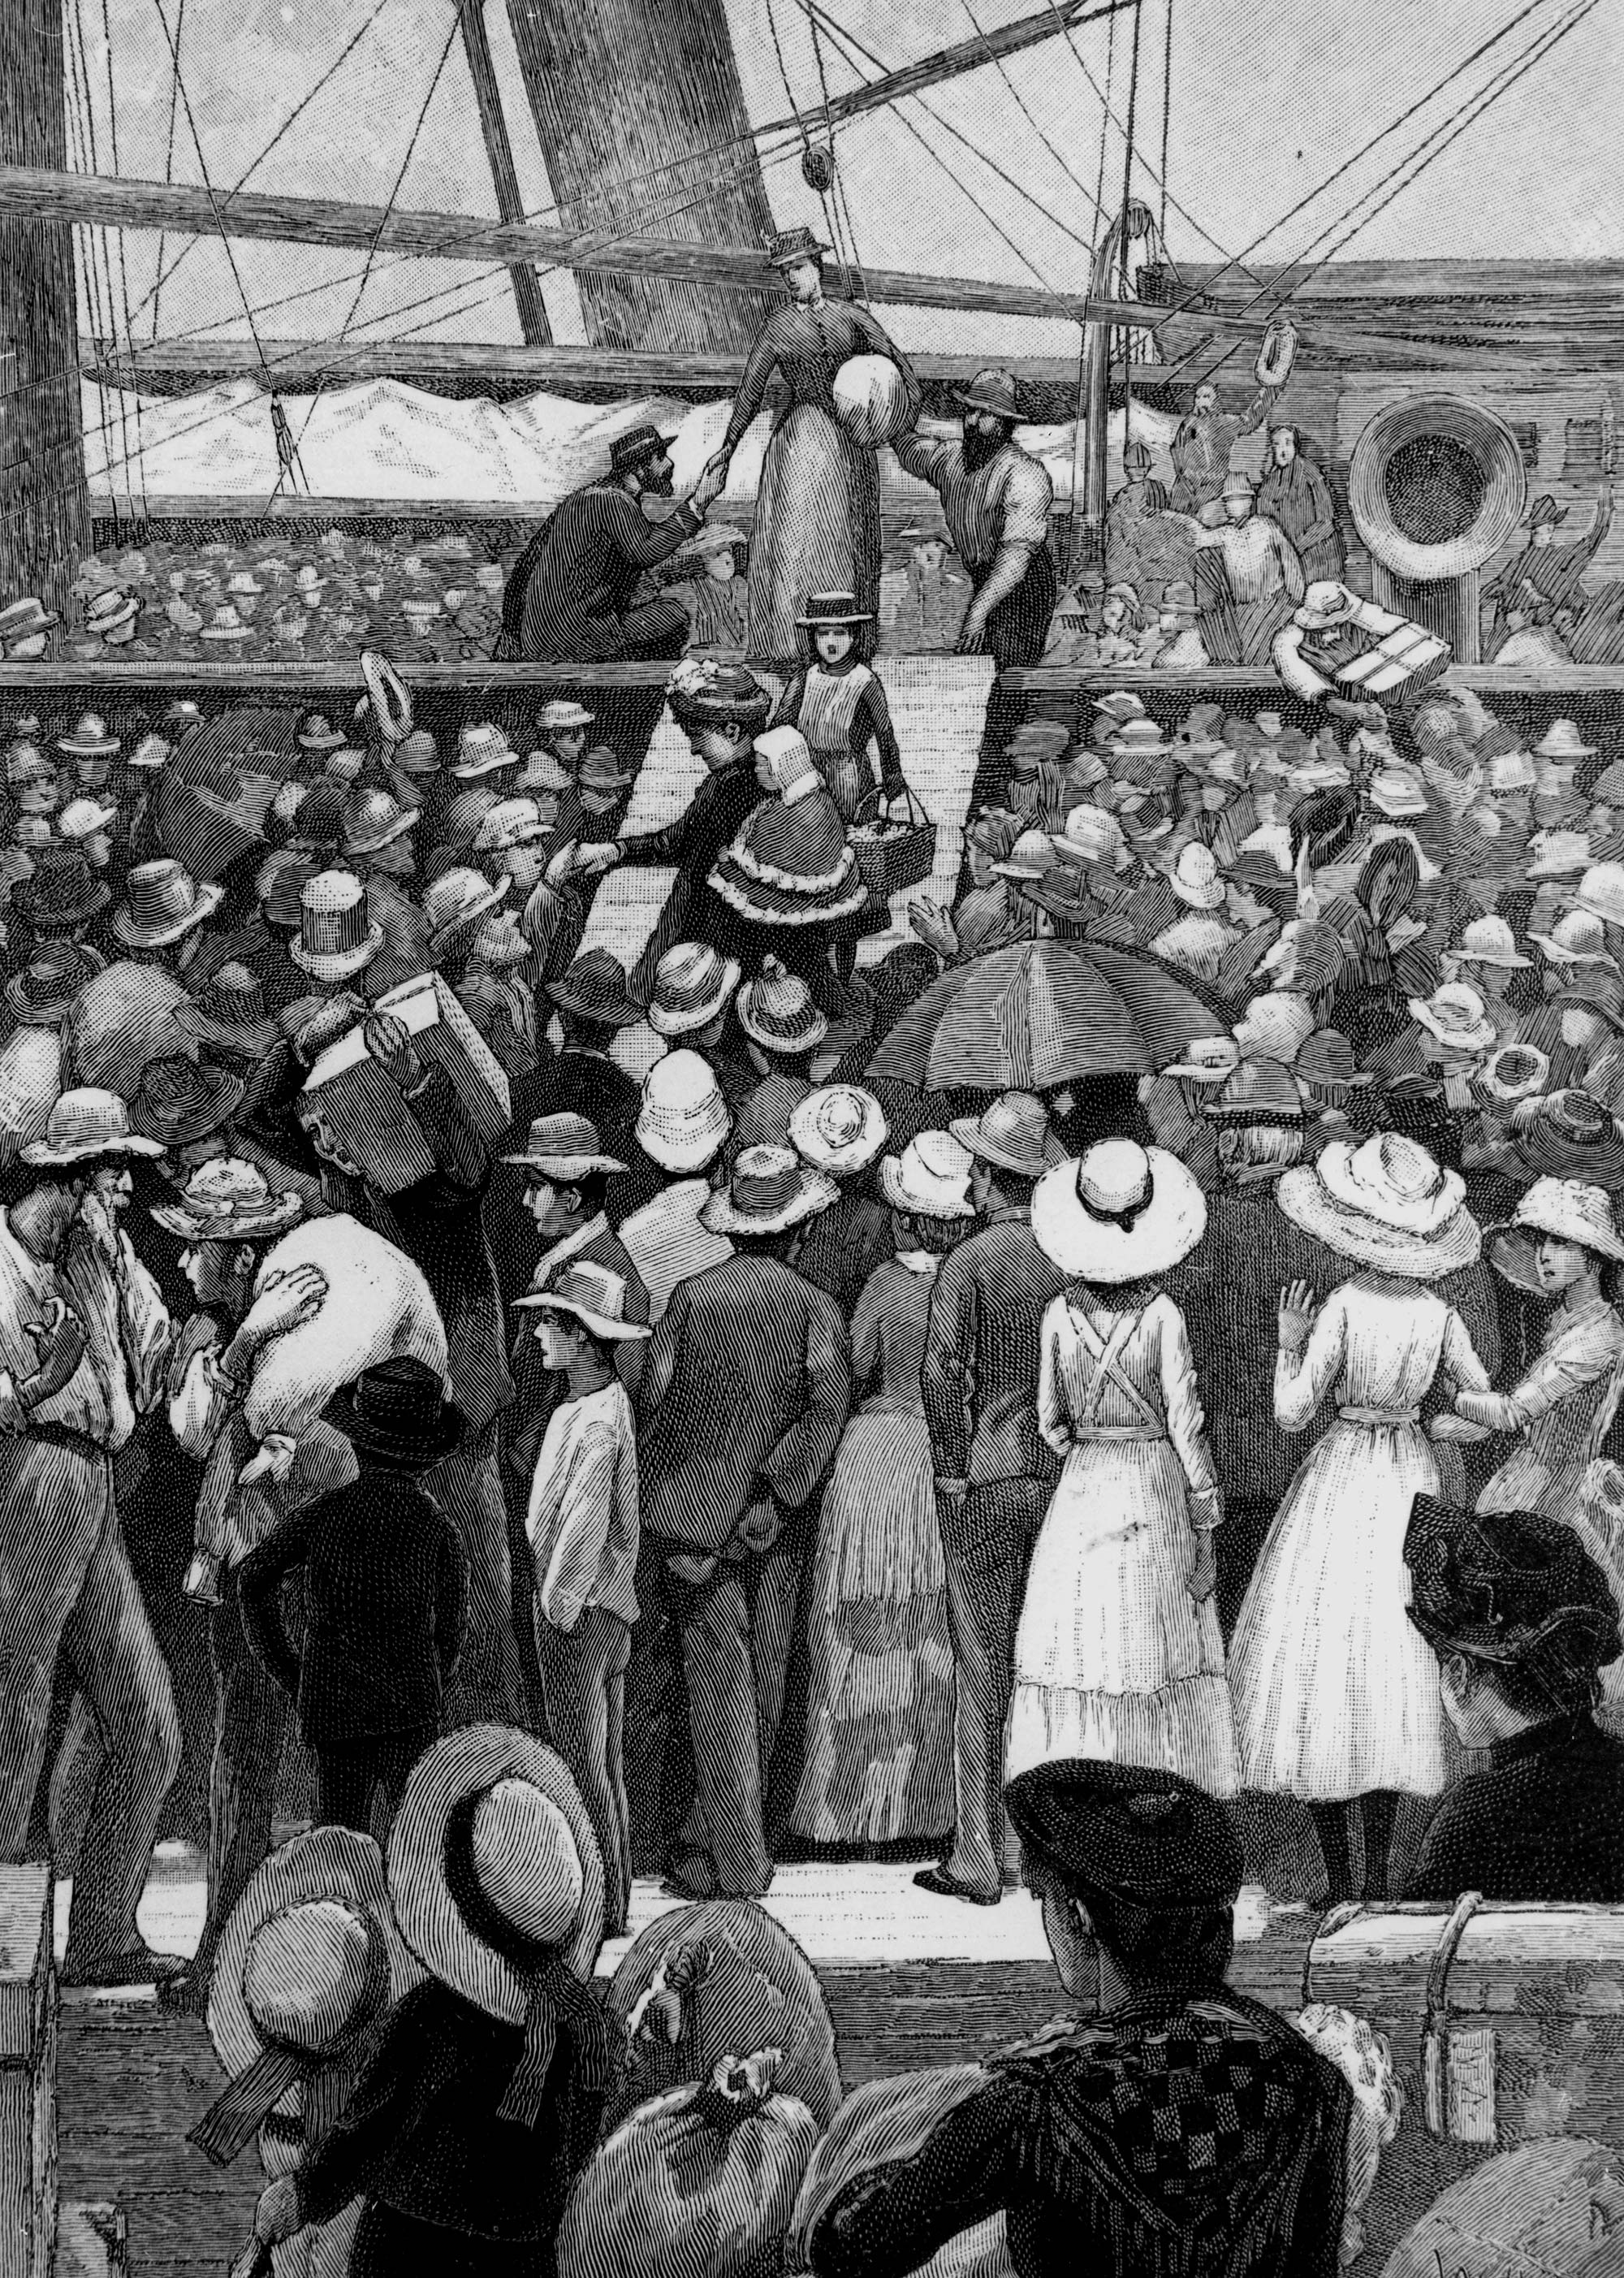 Drawing of women disembarking from a ship circa 1885